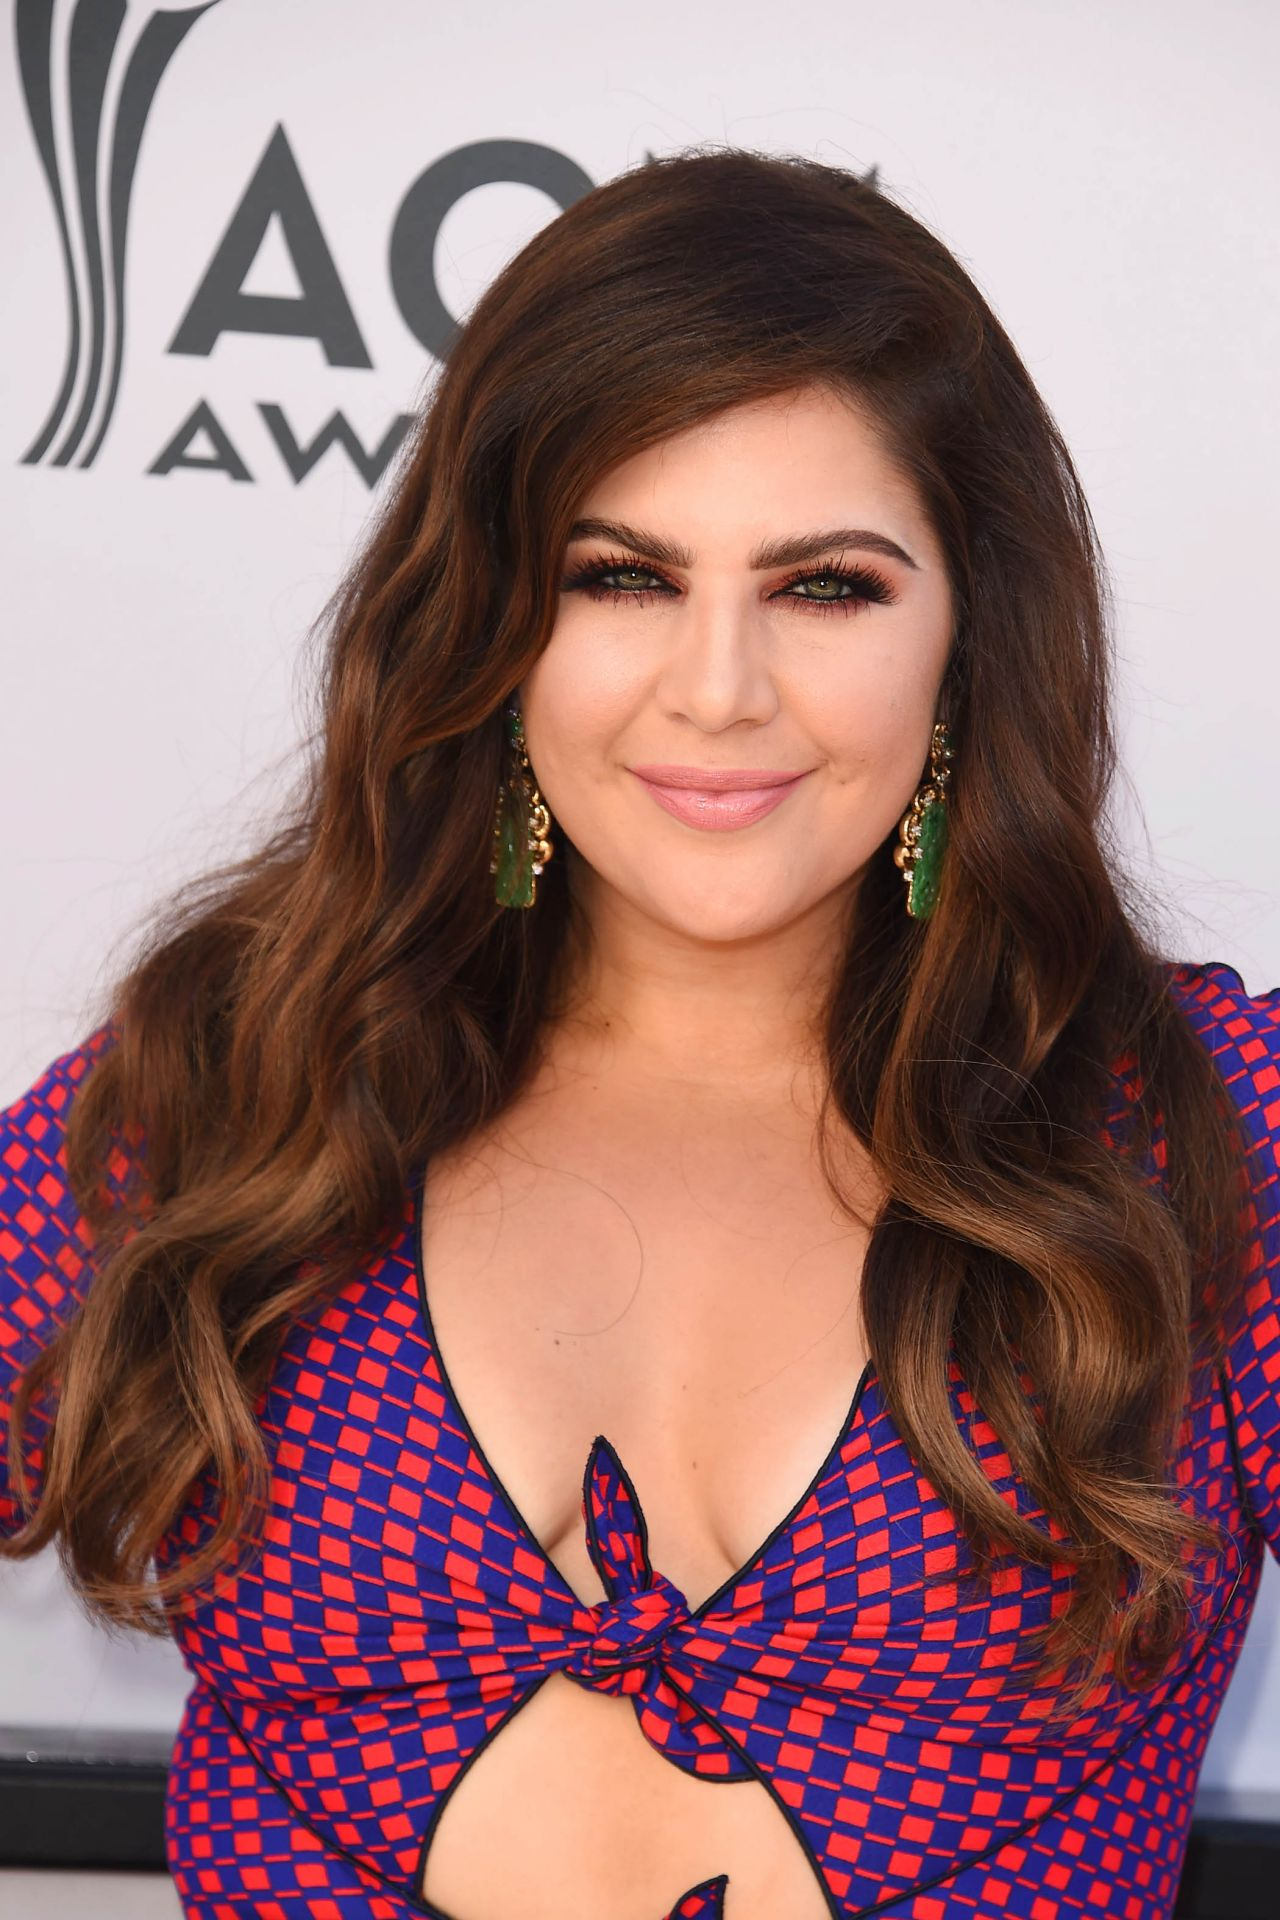 Hillary Scott Latest Photos - CelebMafia Hillary Scott